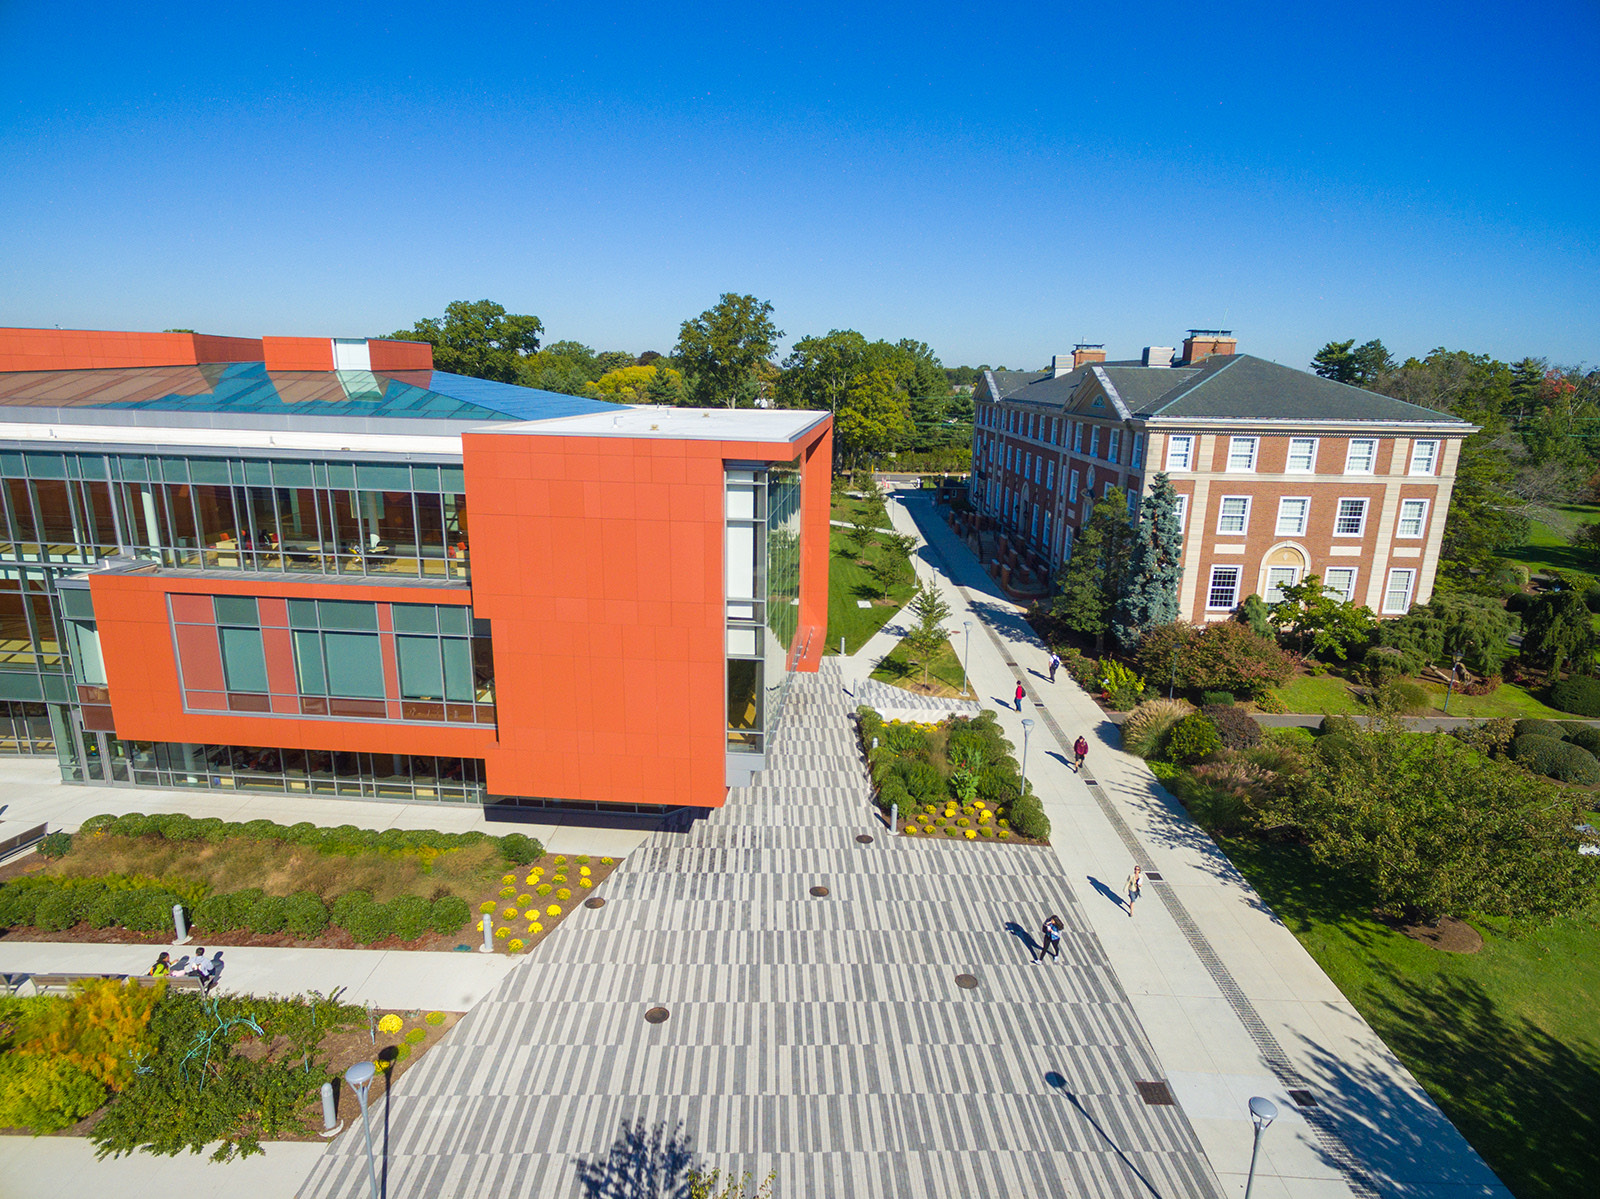 Adelphi University is one of four institutions receiving CARES Act funding through the town.